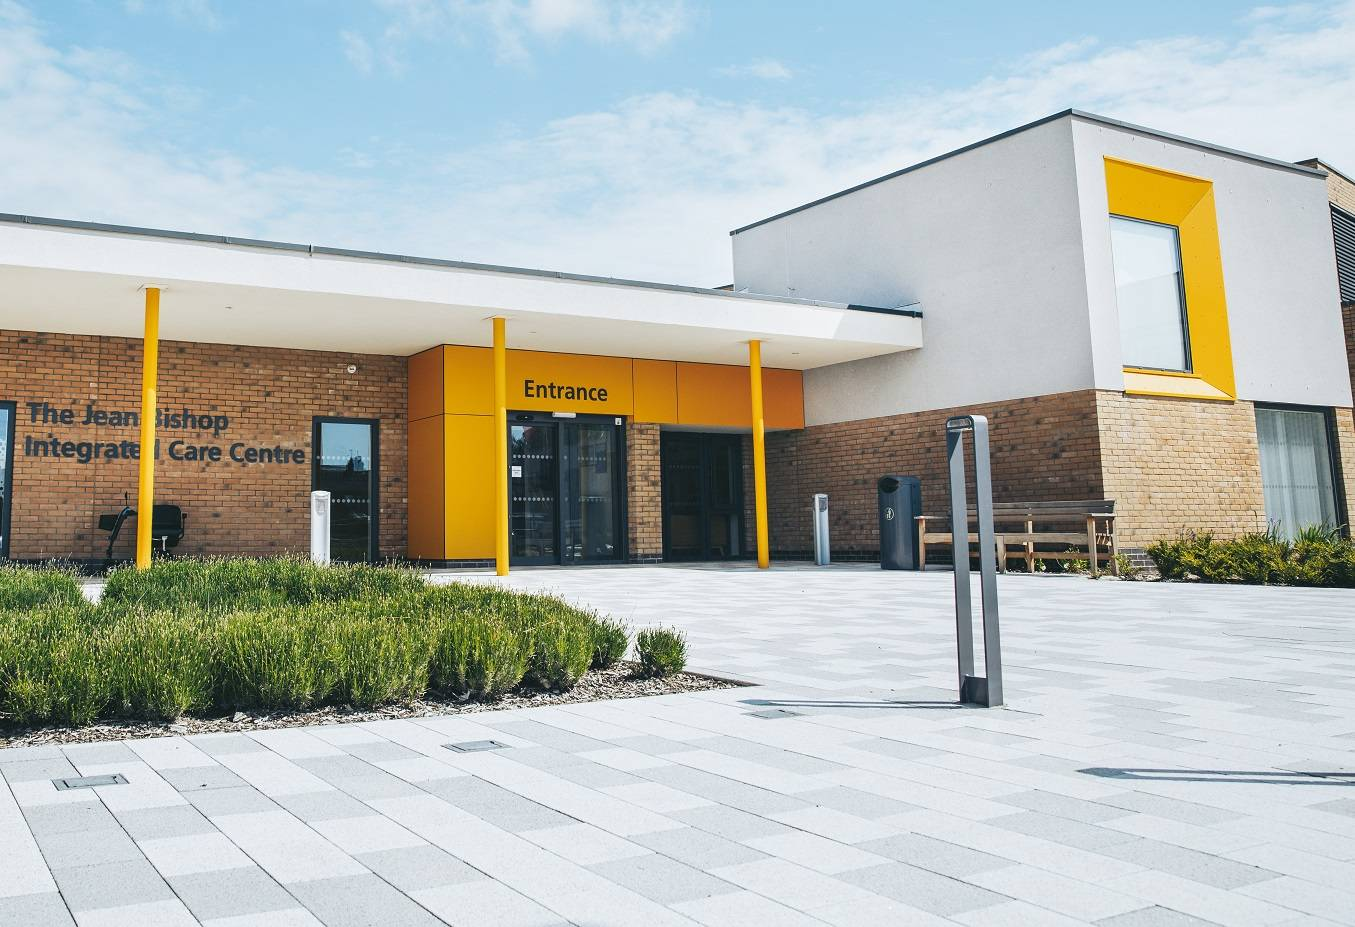 The Jean Bishop Integrated Care Centre in Hull.